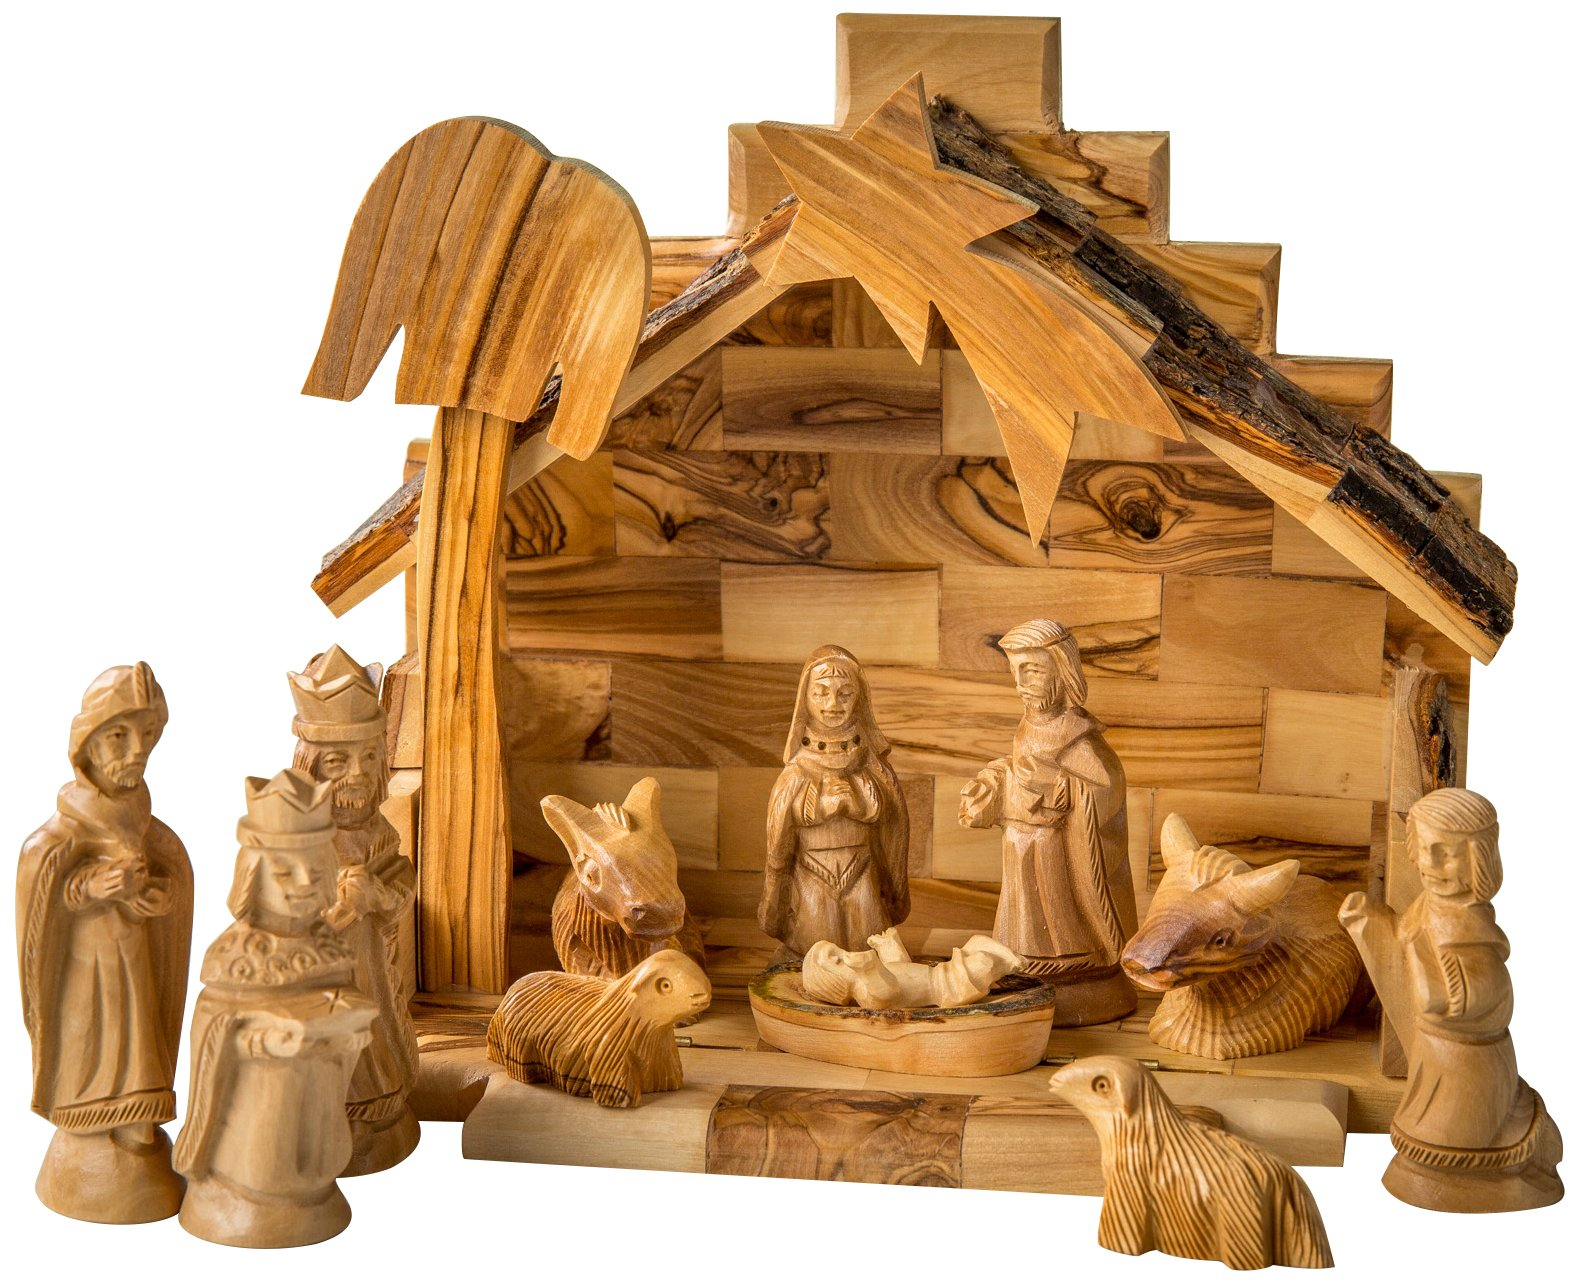 Earthwood Olive Wood Stable and Nativity Set with Traditional Figures by Earthwood